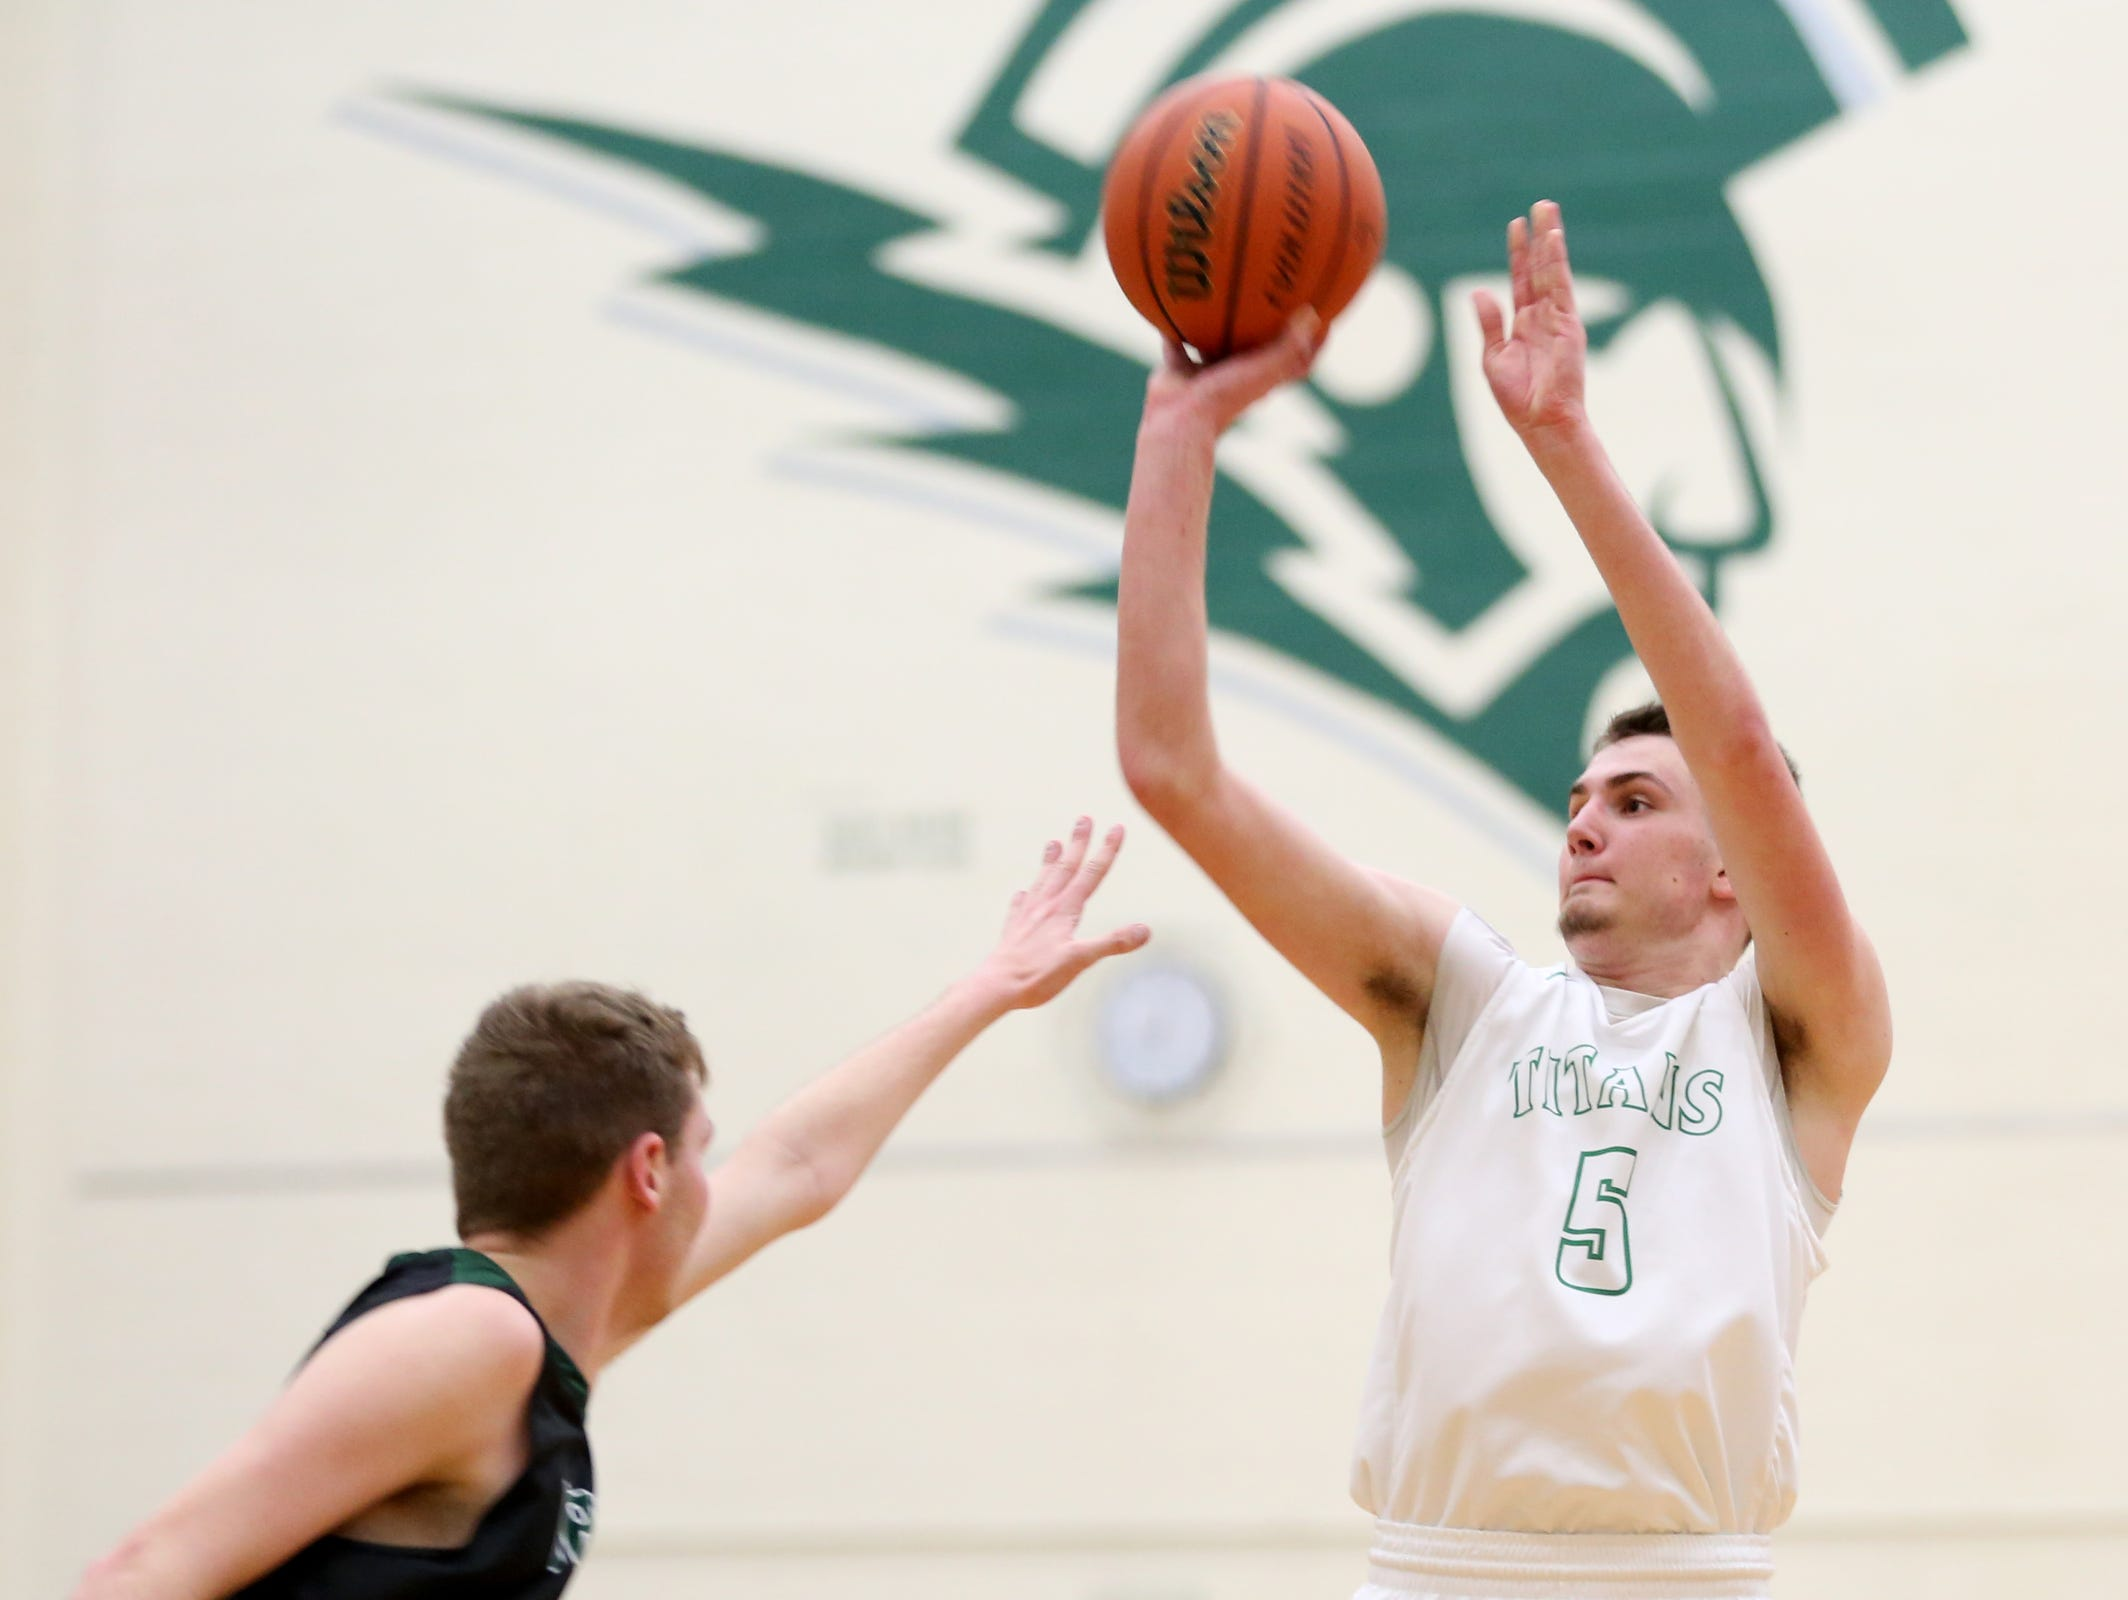 West Salem's Kyle Greeley (5) shoots for three points past Sheldon's Will Swank (33) in the second half of the Sheldon vs. West Salem boy's basketball game, in the first round of the OSAA State Championships playoffs, at West Salem High School on Wednesday, Feb. 28, 2017. West Salem won the game 71-59.